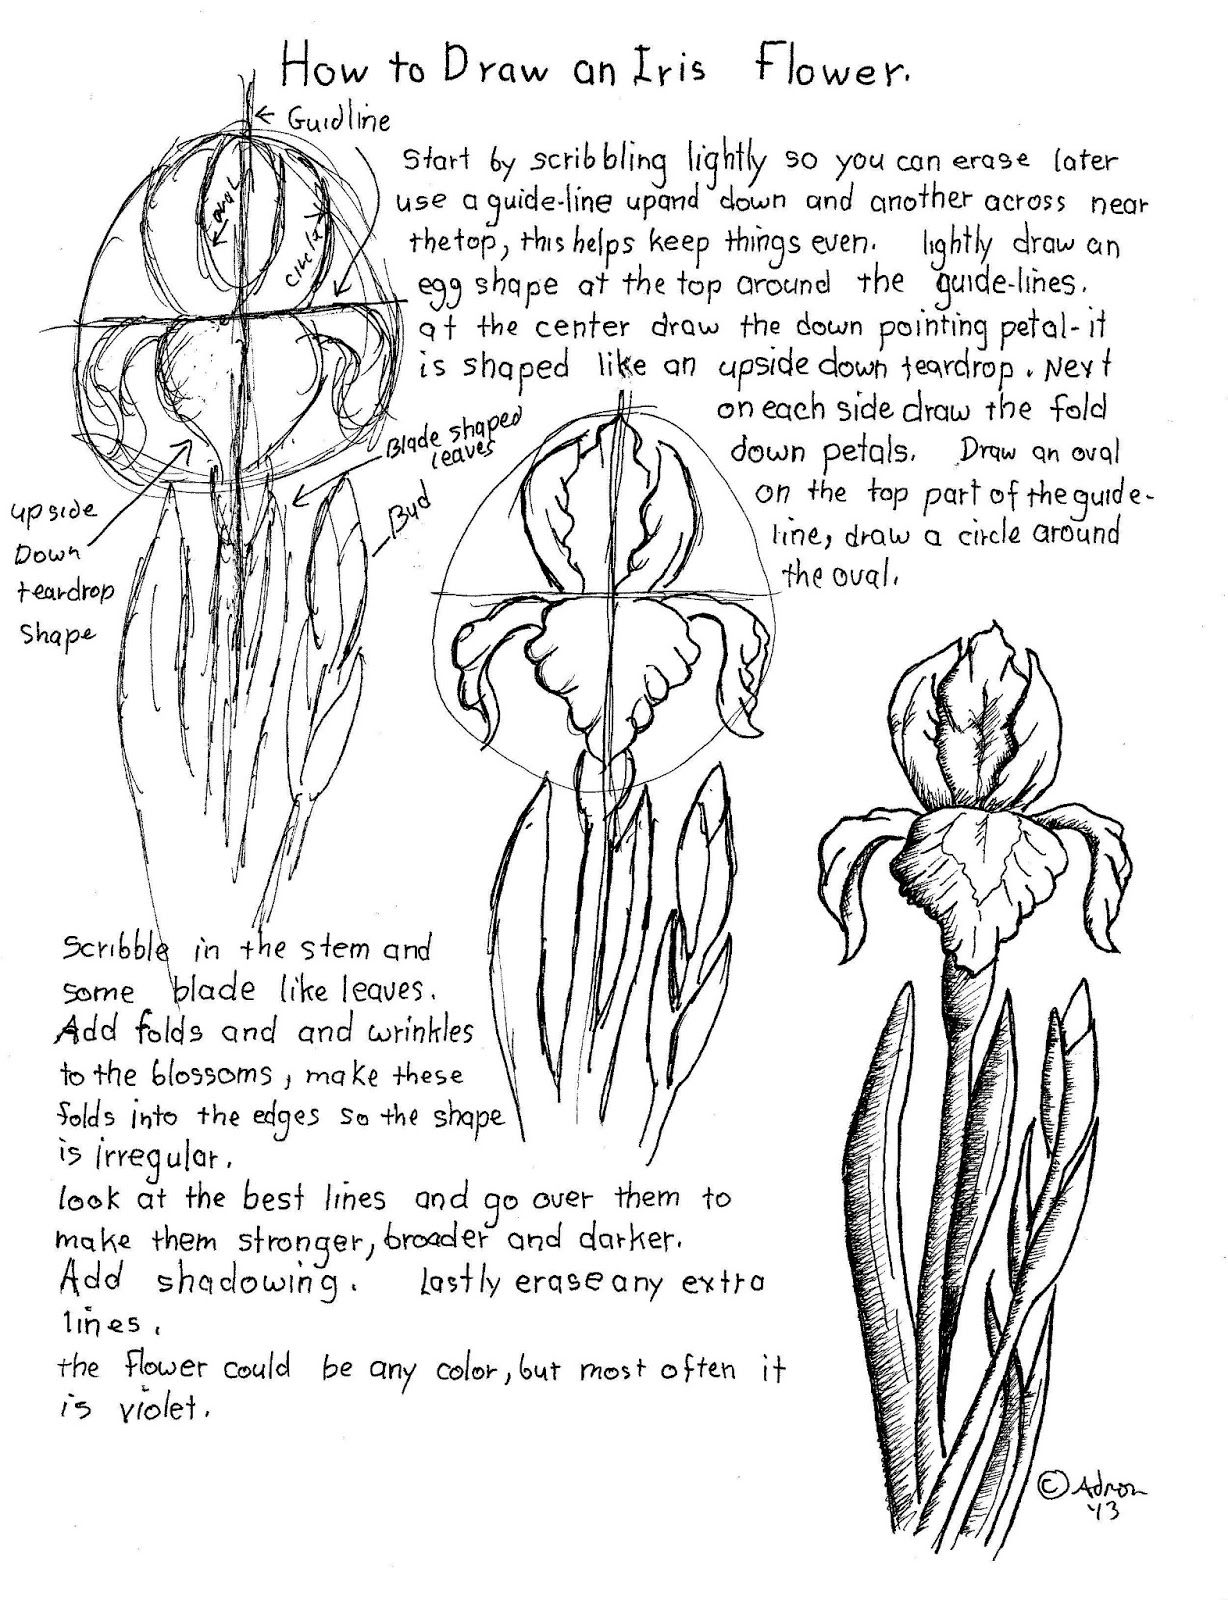 How To Draw An Iris Flower Printable Worksheet Art Techniques